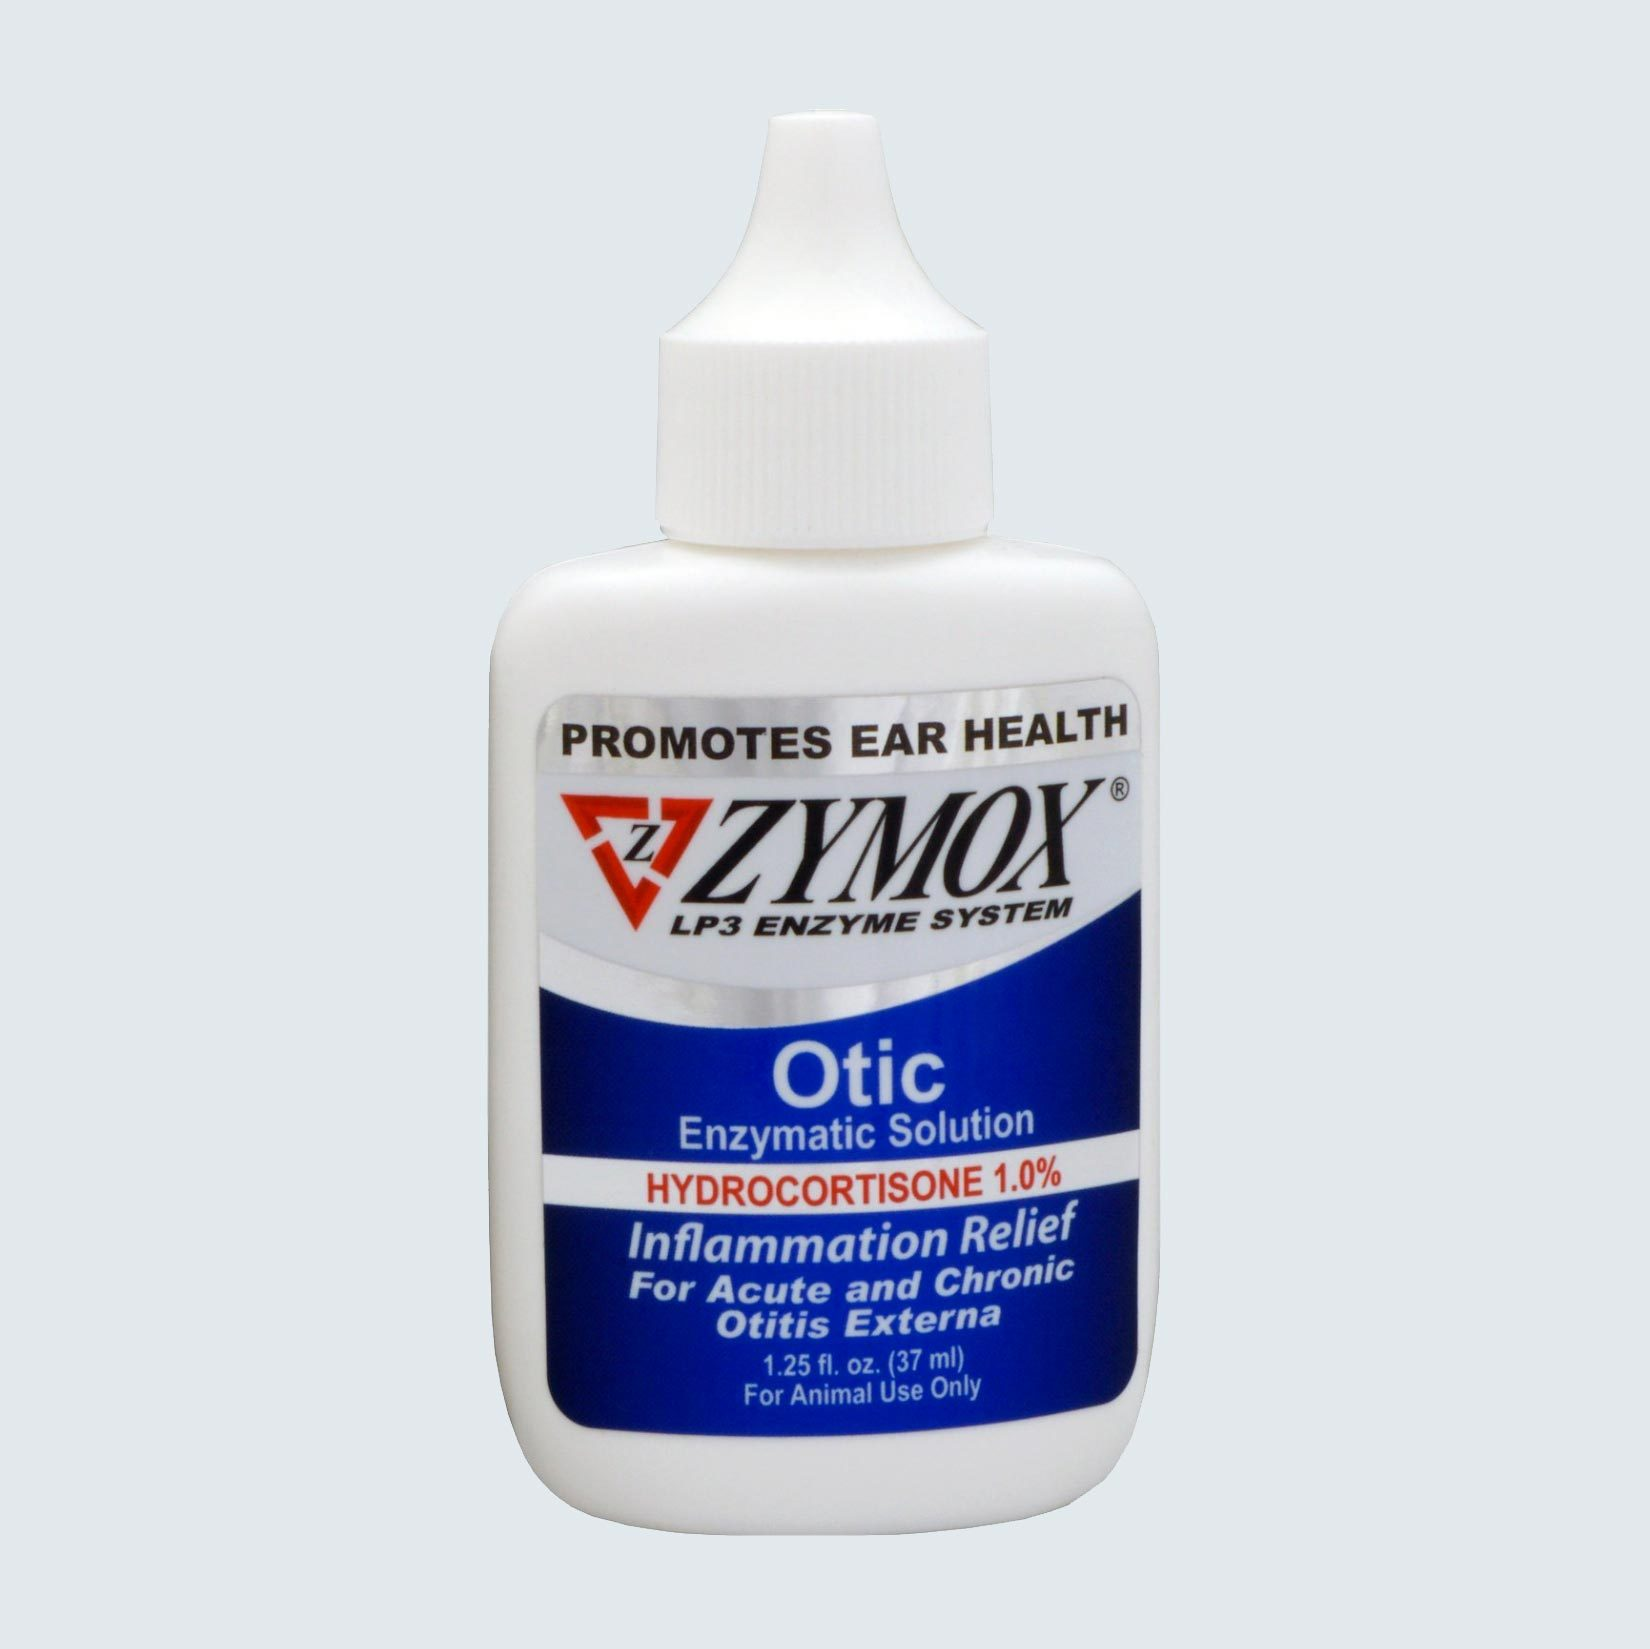 Zymox Otic Pet Ear Treatment with Hydrocortisone